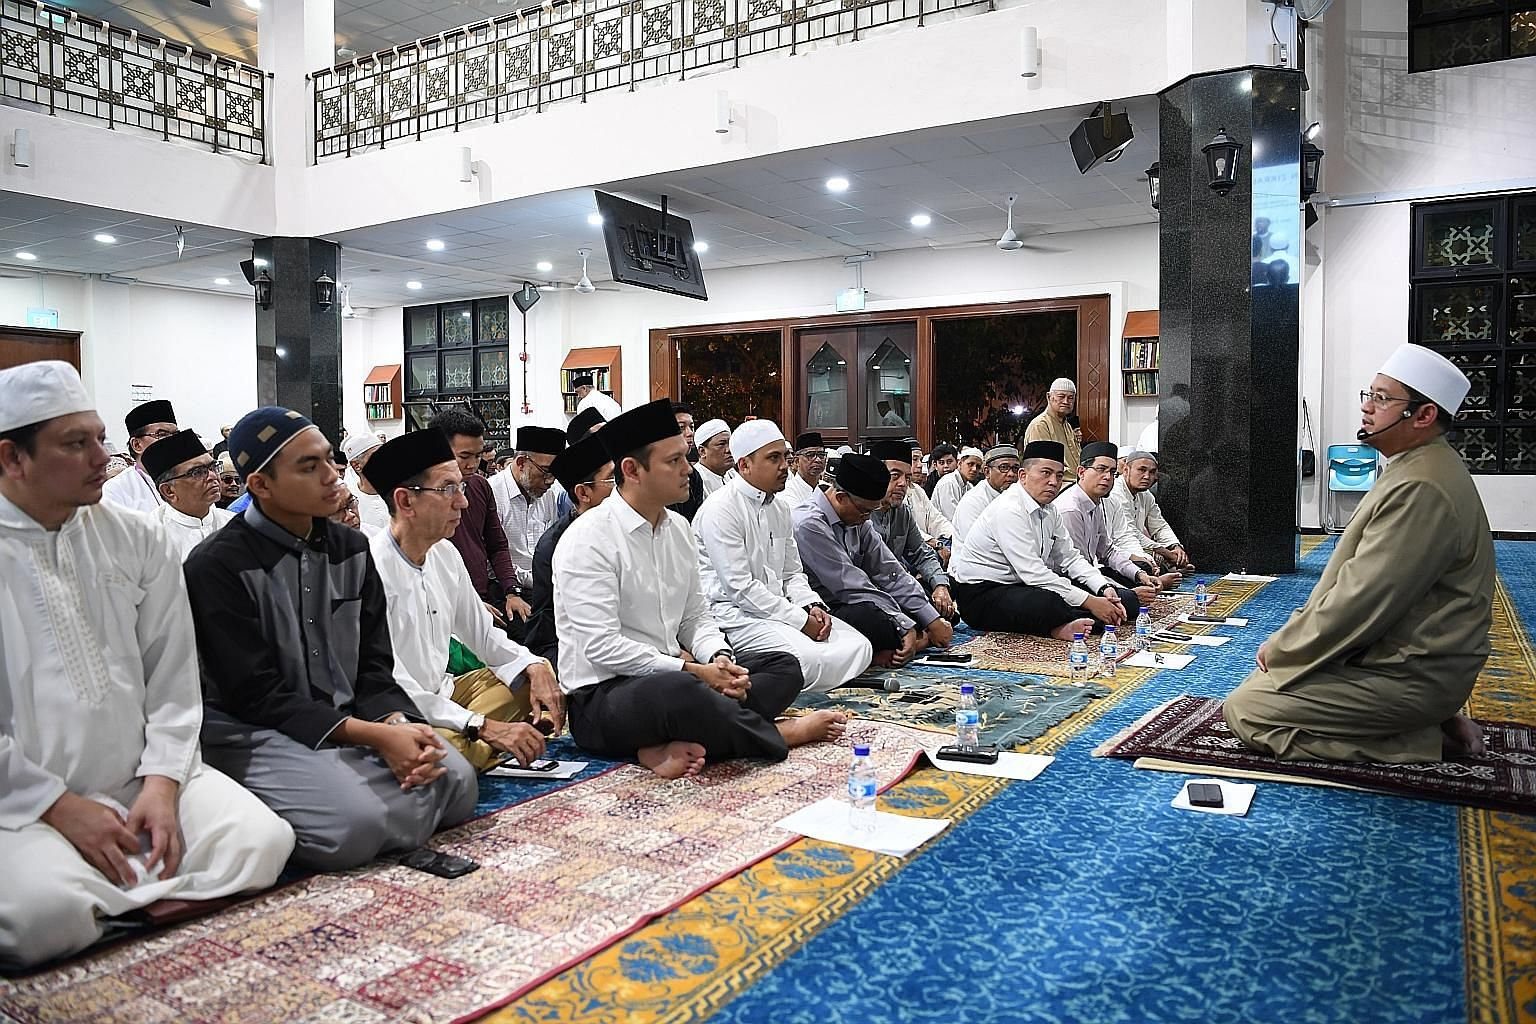 Mufti Fatris Bakaram, Singapore's highest Islamic authority,	giving a short sermon at the commemoration of the Islamic New Year held at Al-Khair Mosque yesterday, in line with the celebration's theme of Striving with Confidence, Serving with Compassi